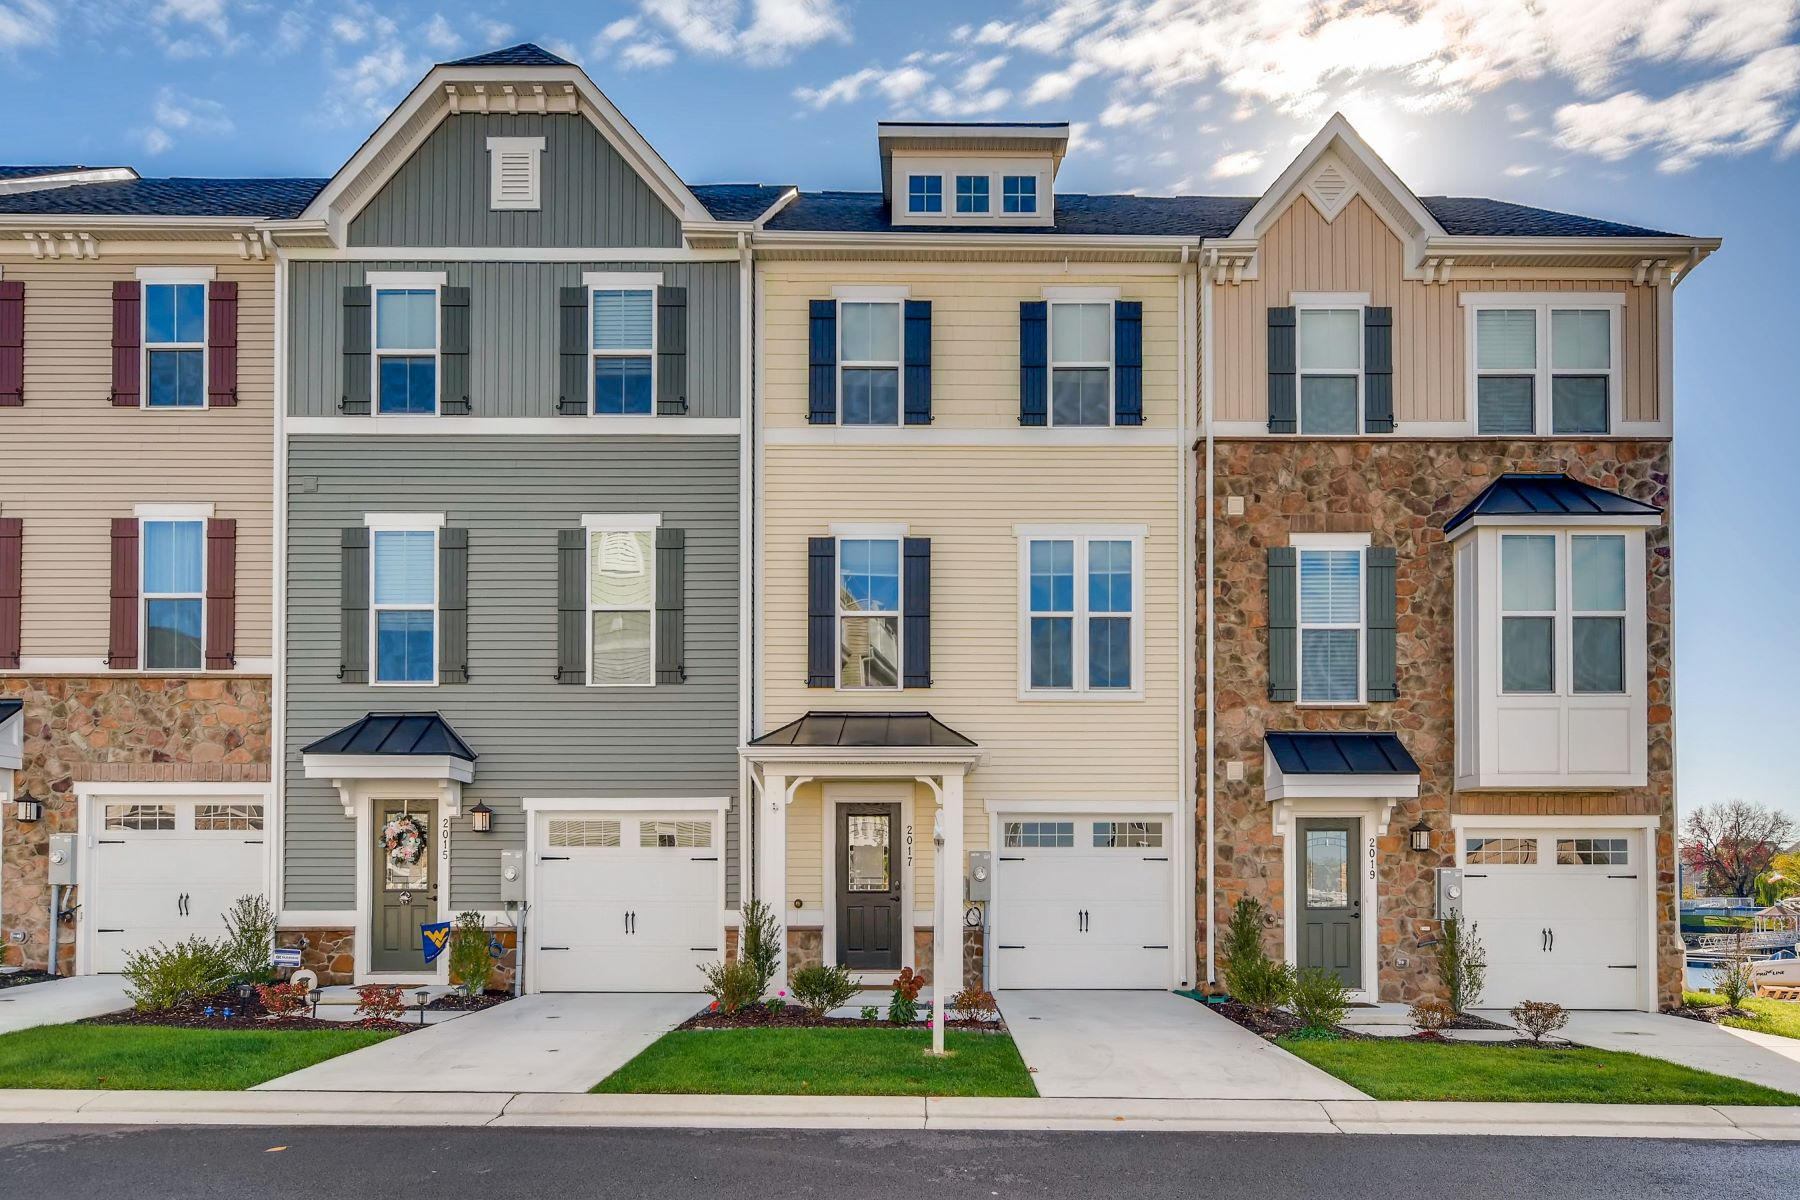 townhouses for Sale at Sheltered Harbor 2017 Jetty Drive, Dundalk, Maryland 21222 United States